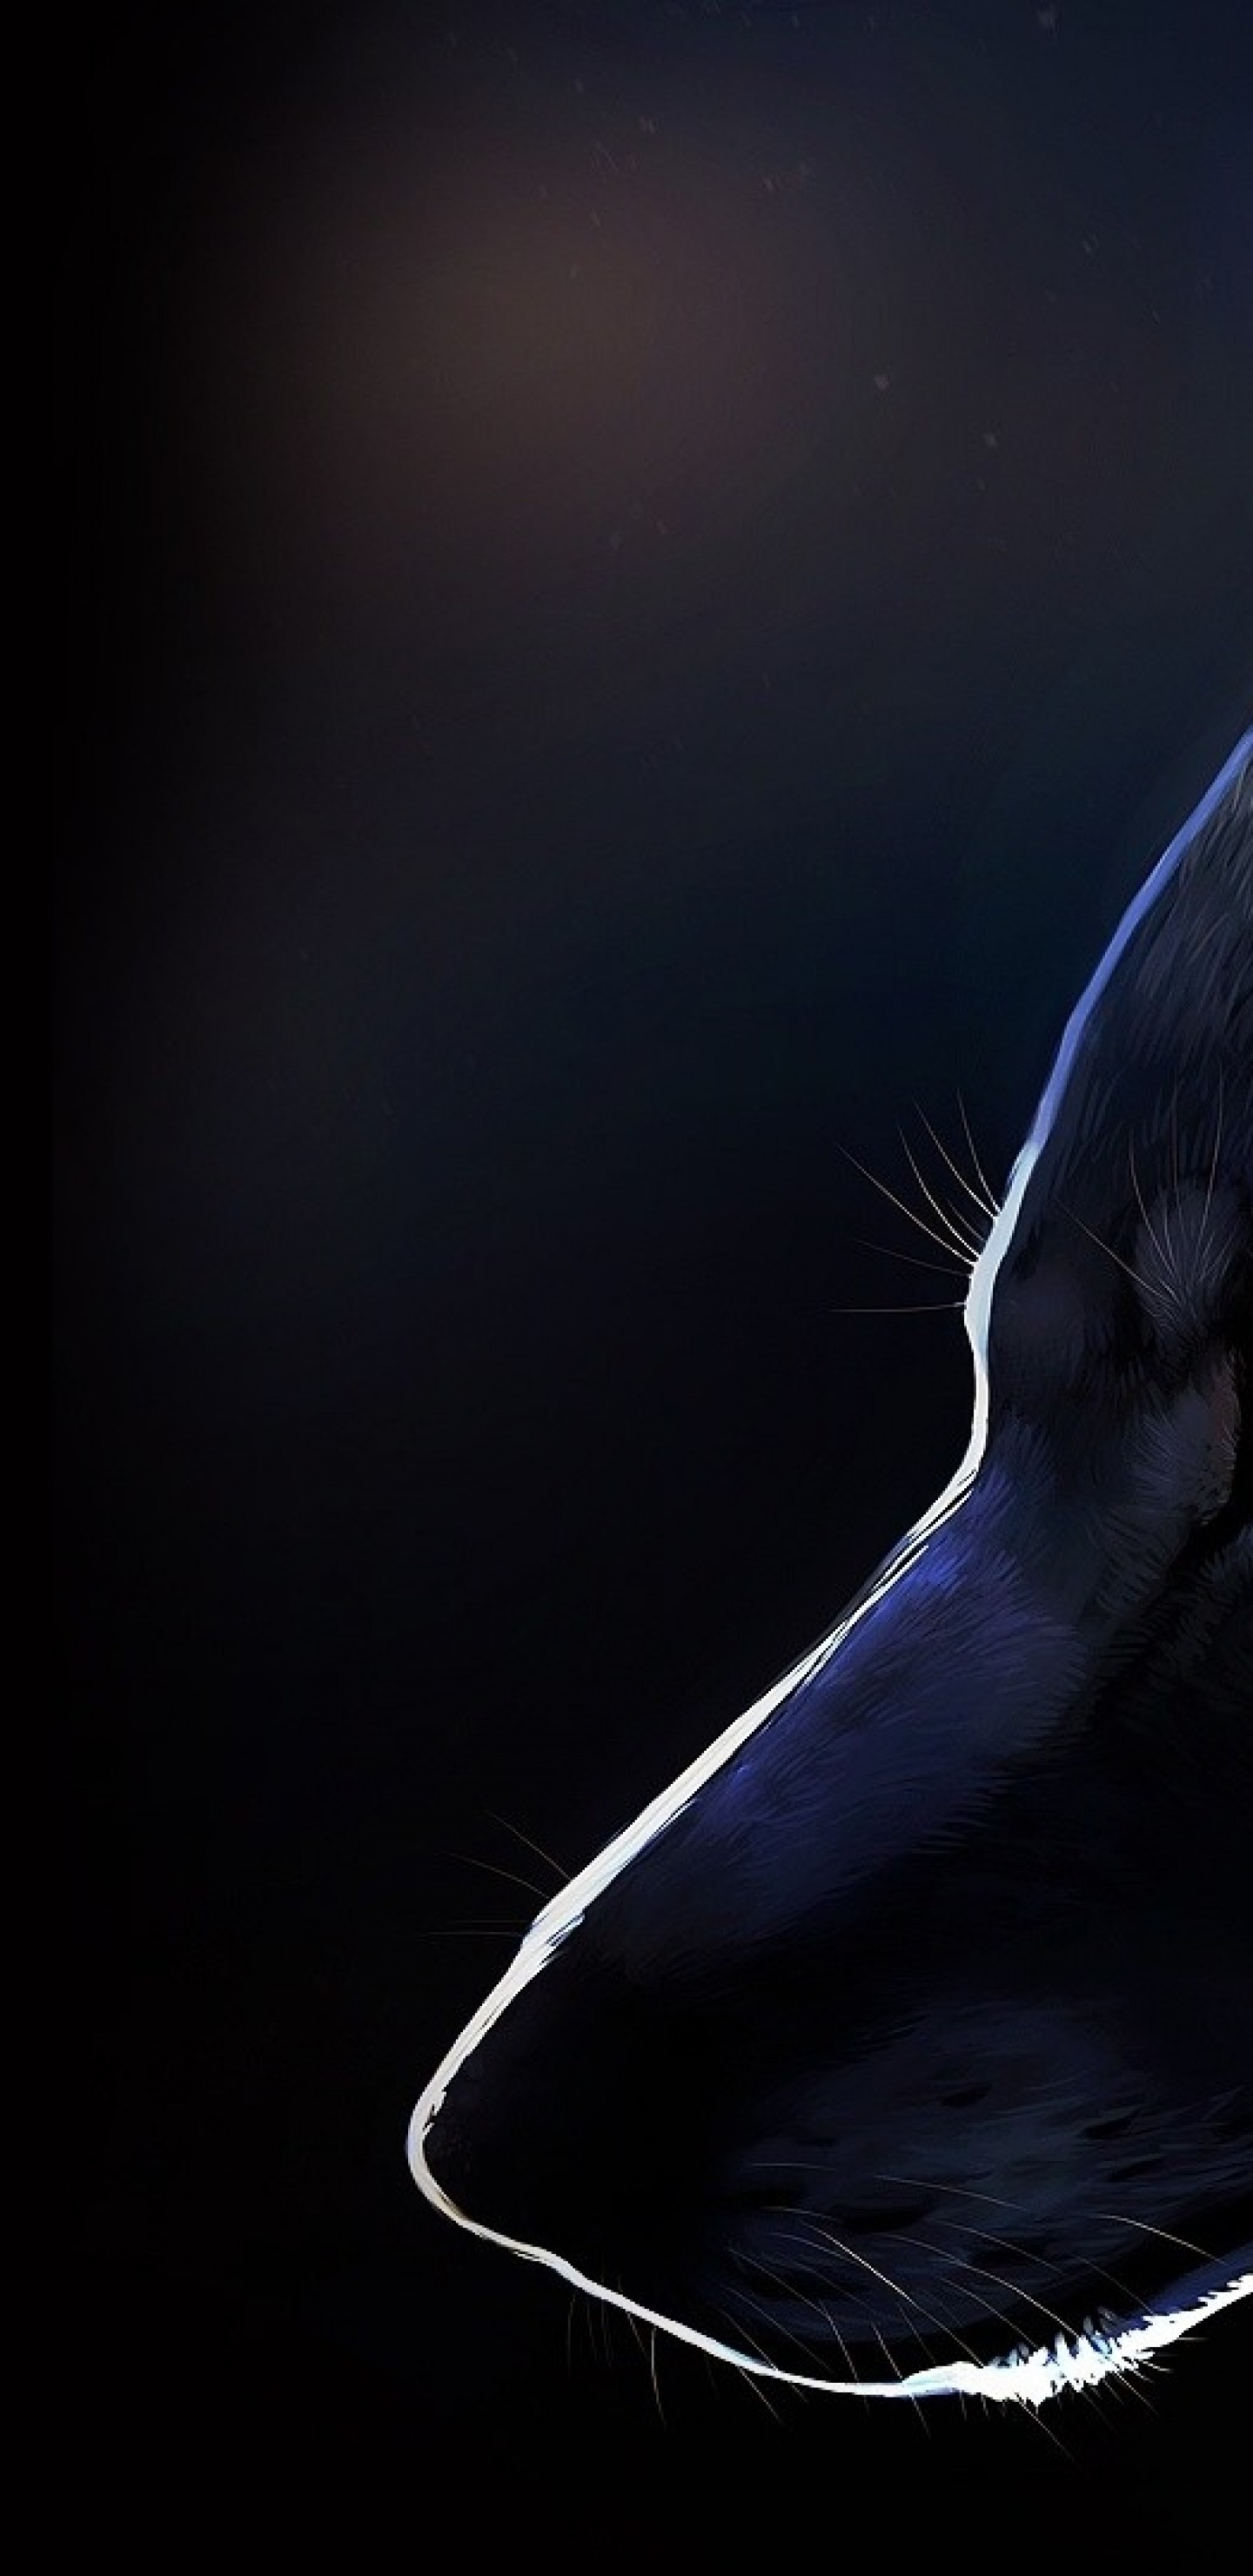 Res: 1440x2960, Wolf, Profile View, Majestic, Red Eyes, Furry